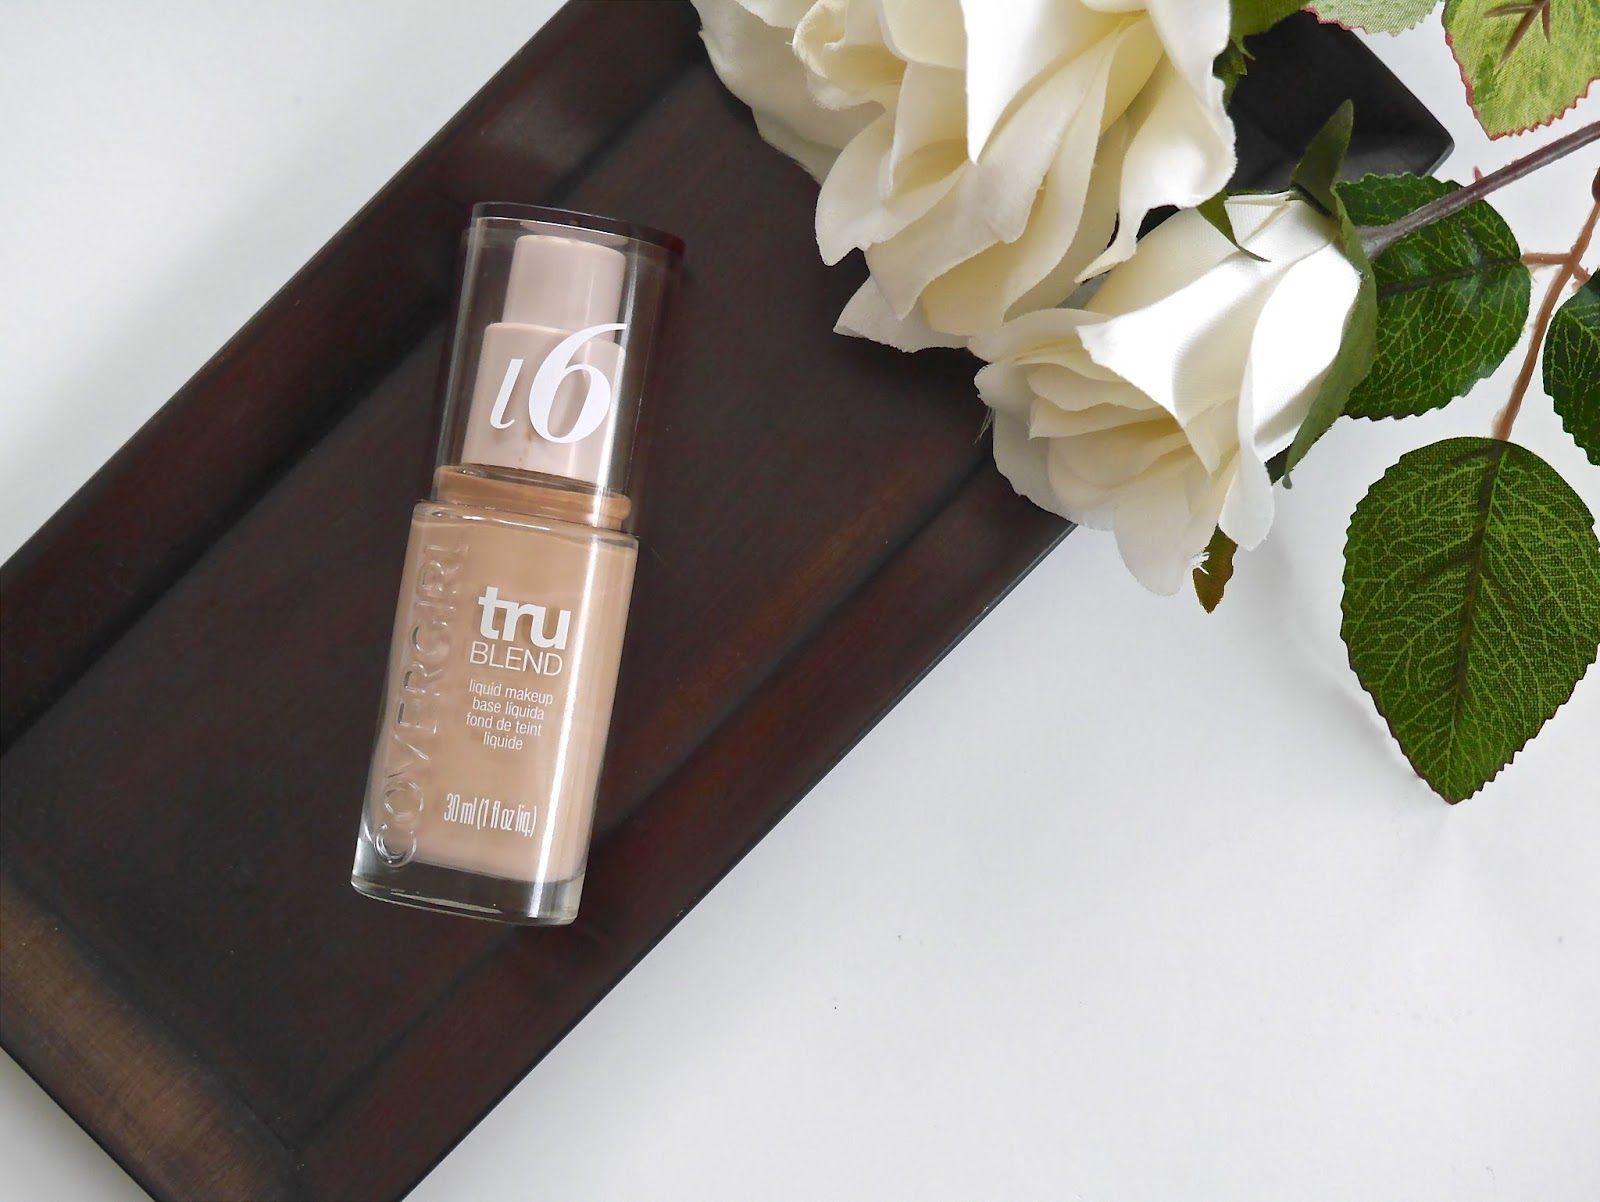 drugstore makeup, CoverGirl, foundation, natural, dewy, glow, drugstore, light coverage